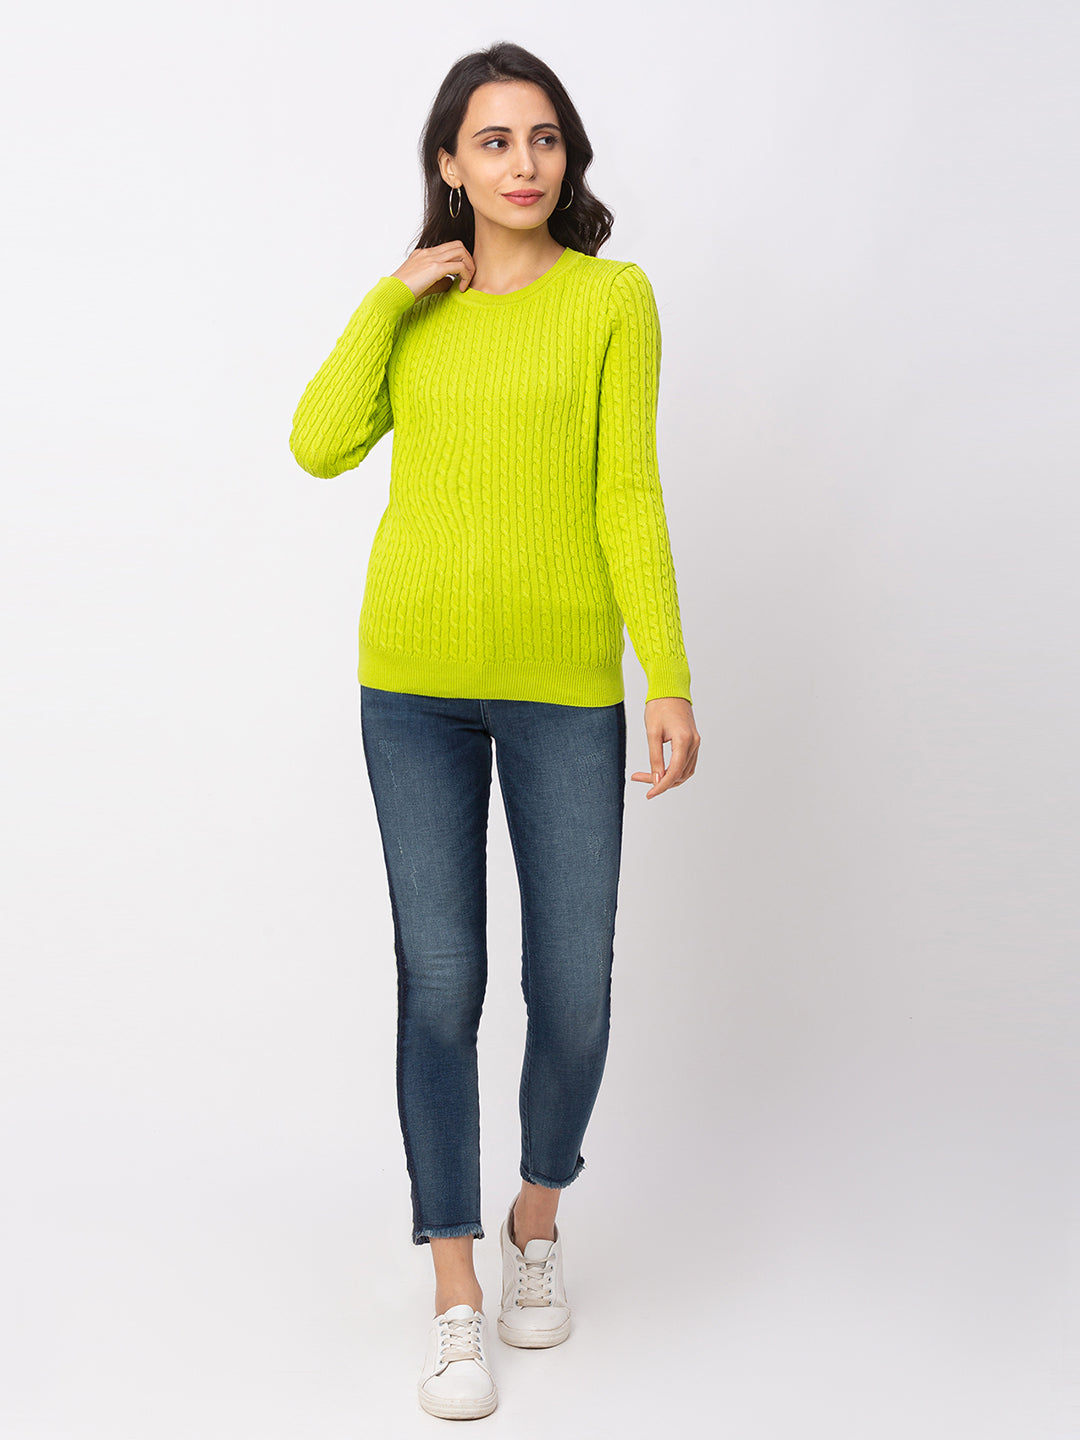 Globus Lime Textured Sweater-2